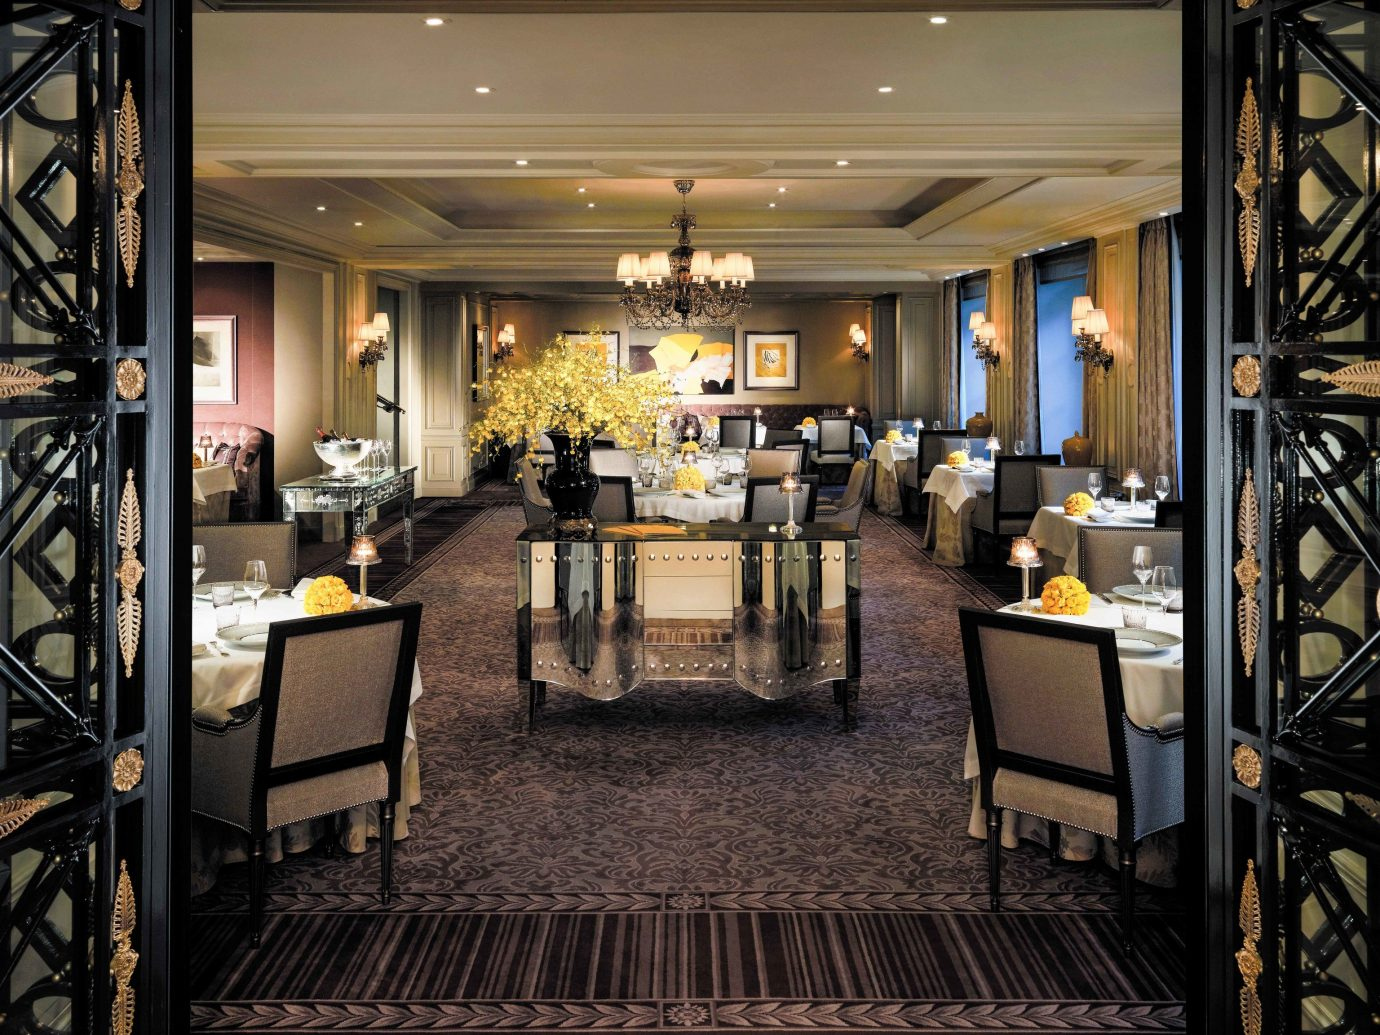 Food + Drink Romance indoor ceiling restaurant interior design dining room function hall Lobby flooring furniture